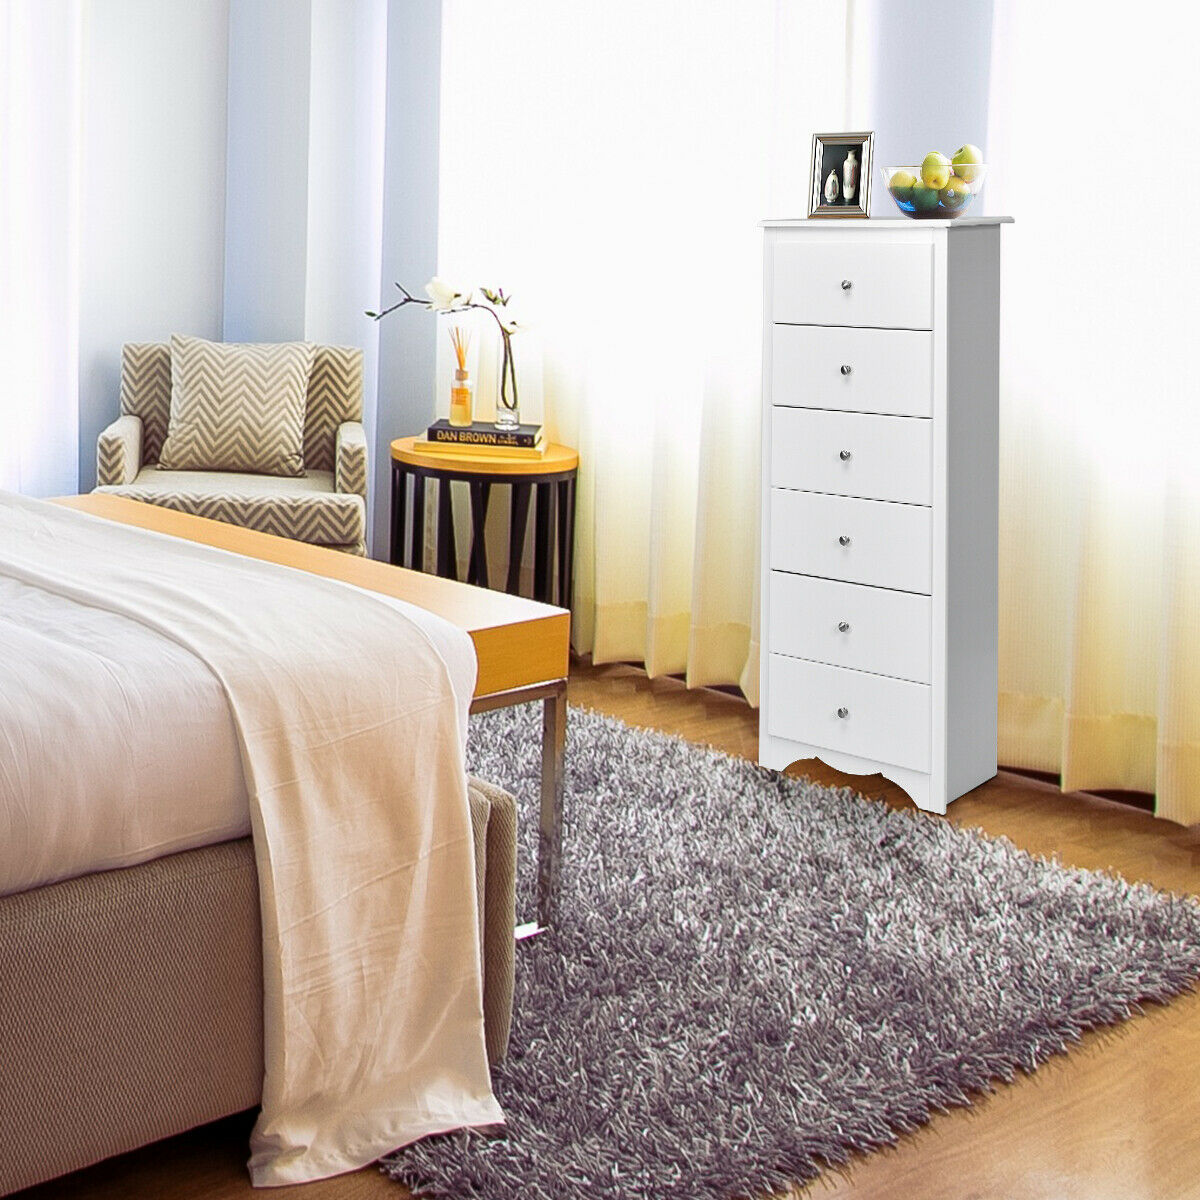 gymax 6 drawer chest dresser clothes storage bedroom tall